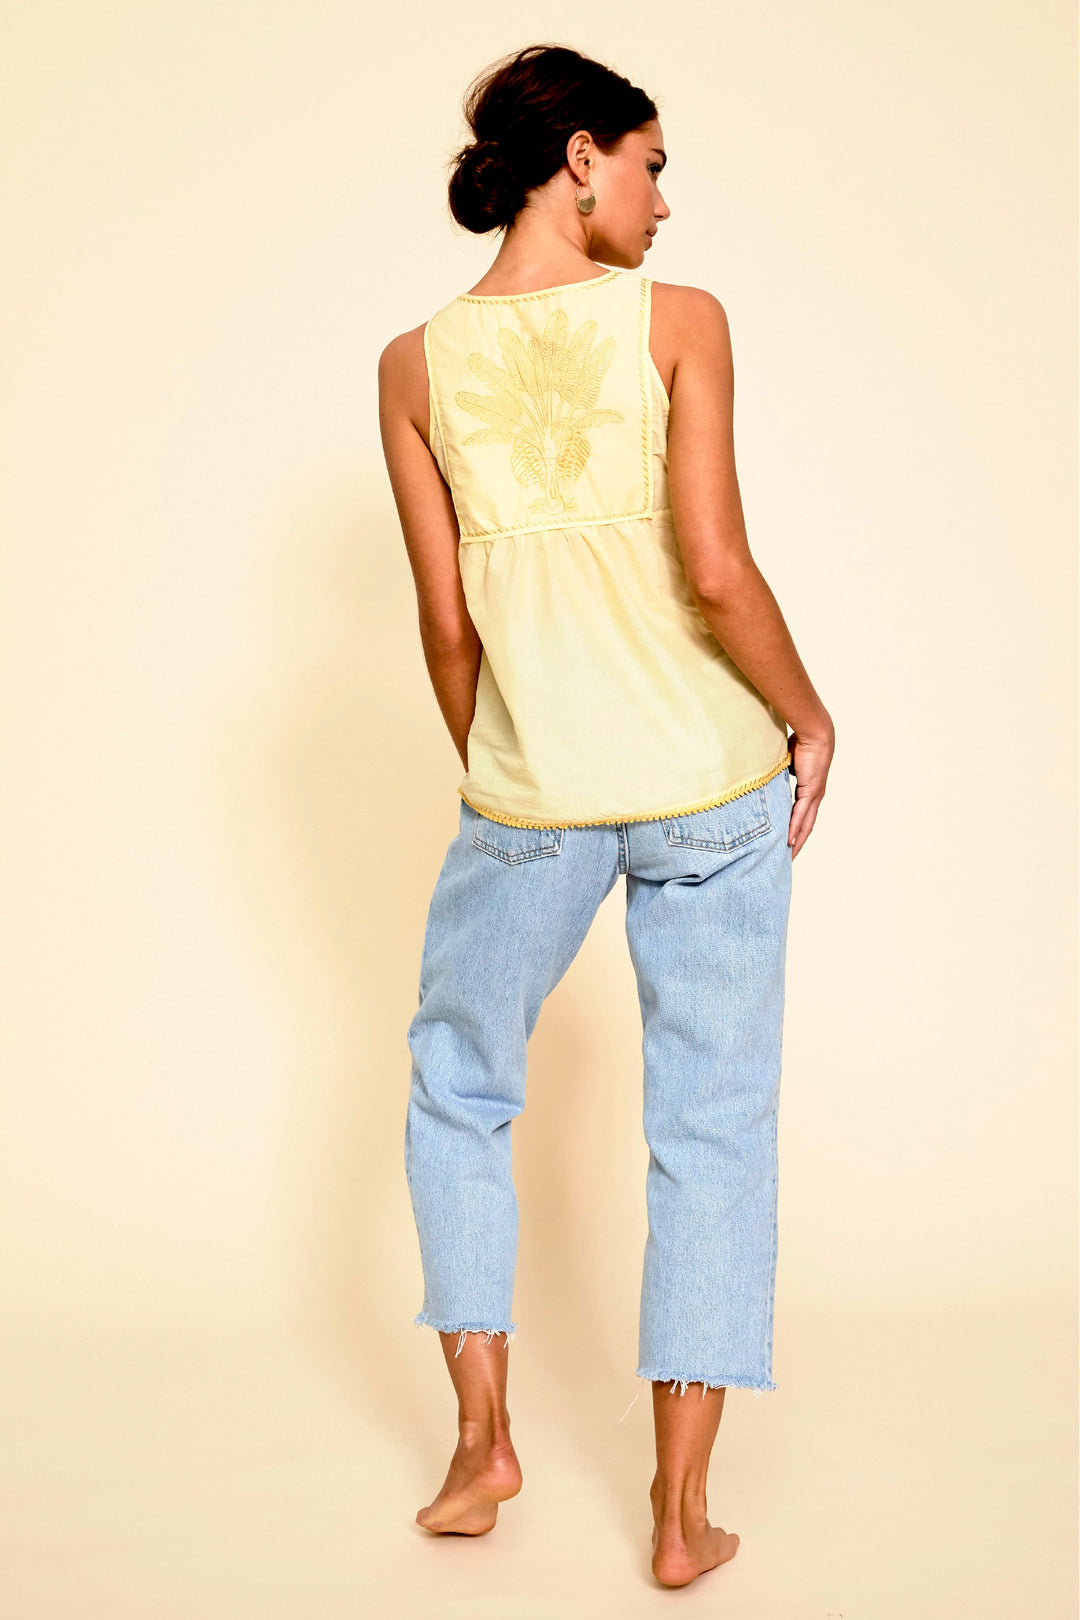 lemon yellow pastel embroidered palladio camisole top summer foundling